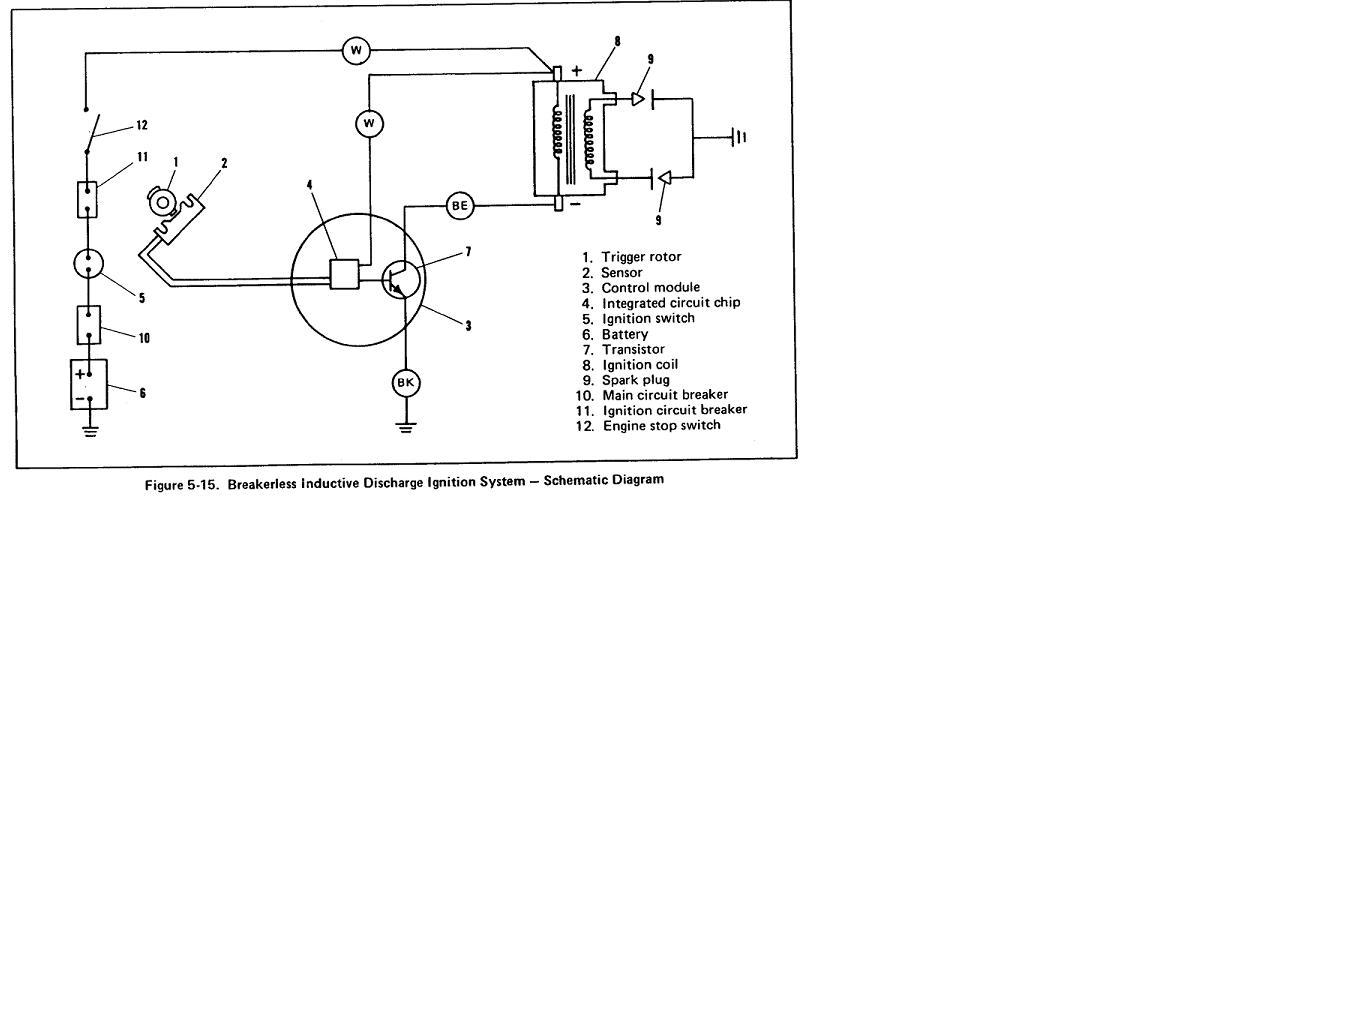 1975 harley davidson sportster wiring diagram isuzu trooper ironhead engine